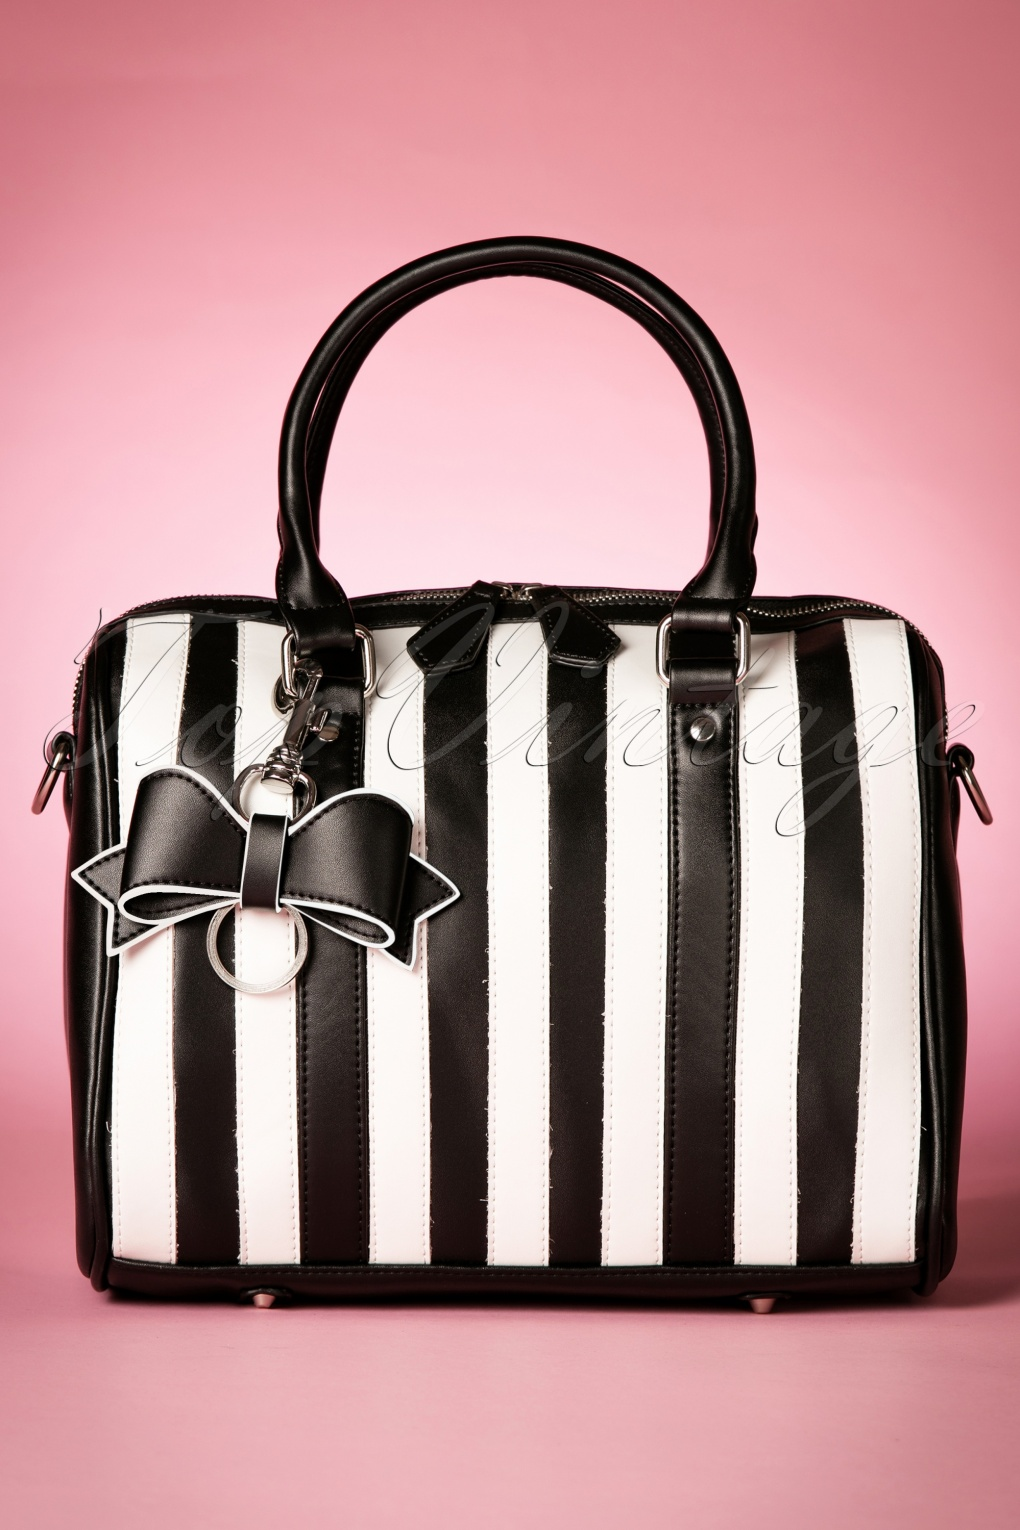 Retro Handbags, Purses, Wallets, Bags 50s Lovely Viola Small Handbag in Black and White Stripes £69.45 AT vintagedancer.com